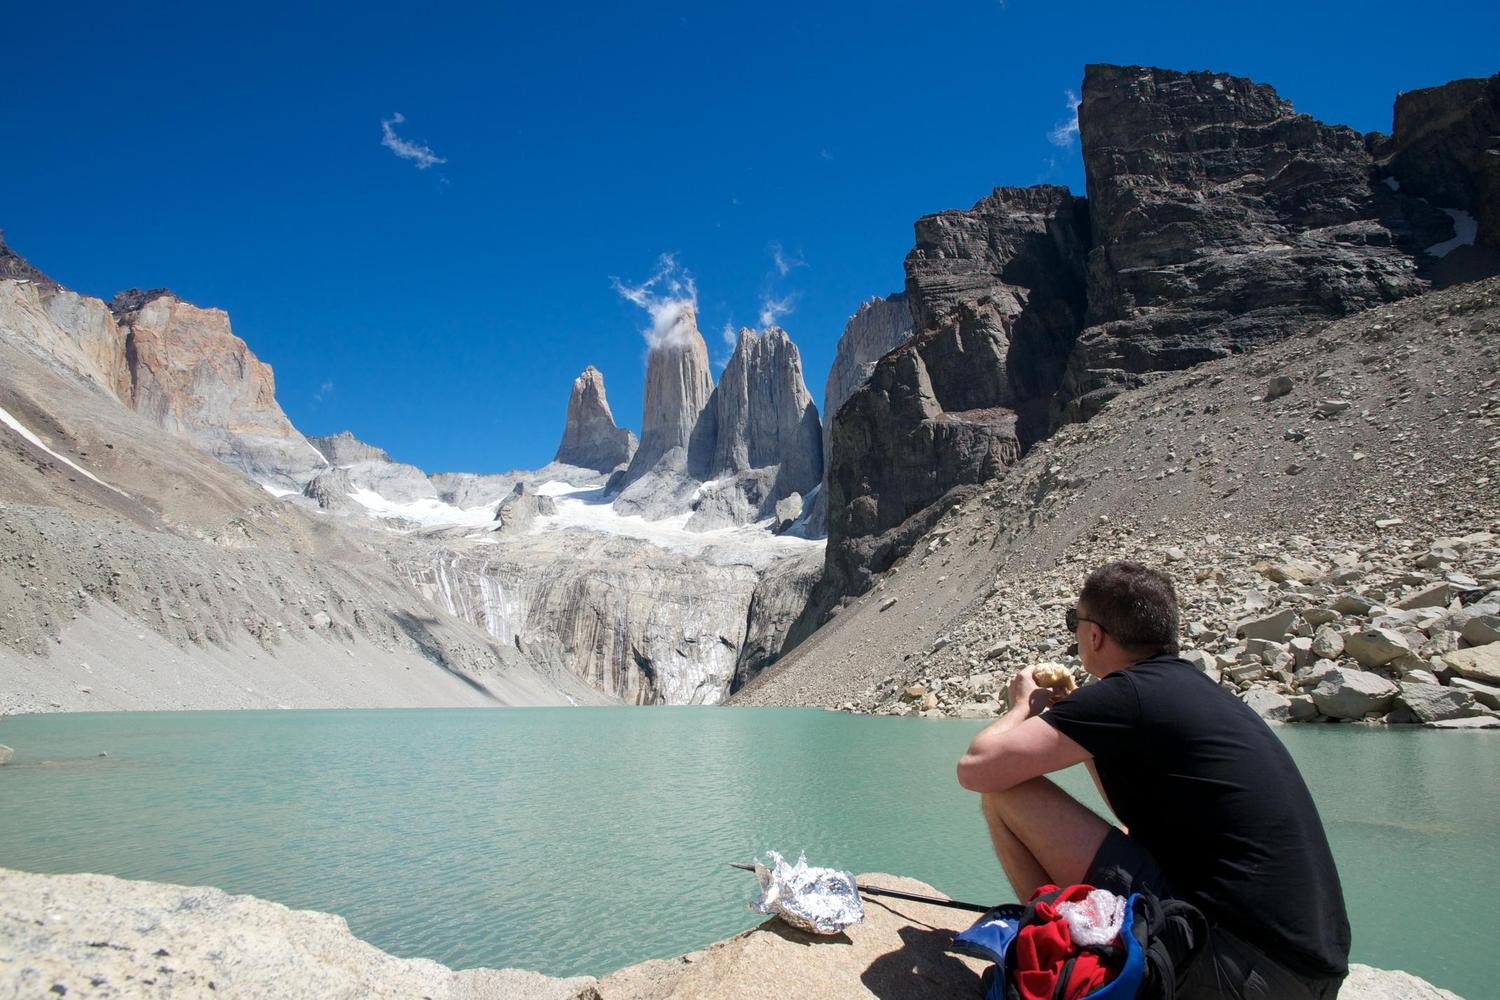 Taking a well-earned break at the glacial lake at the foot of the Paine Towers